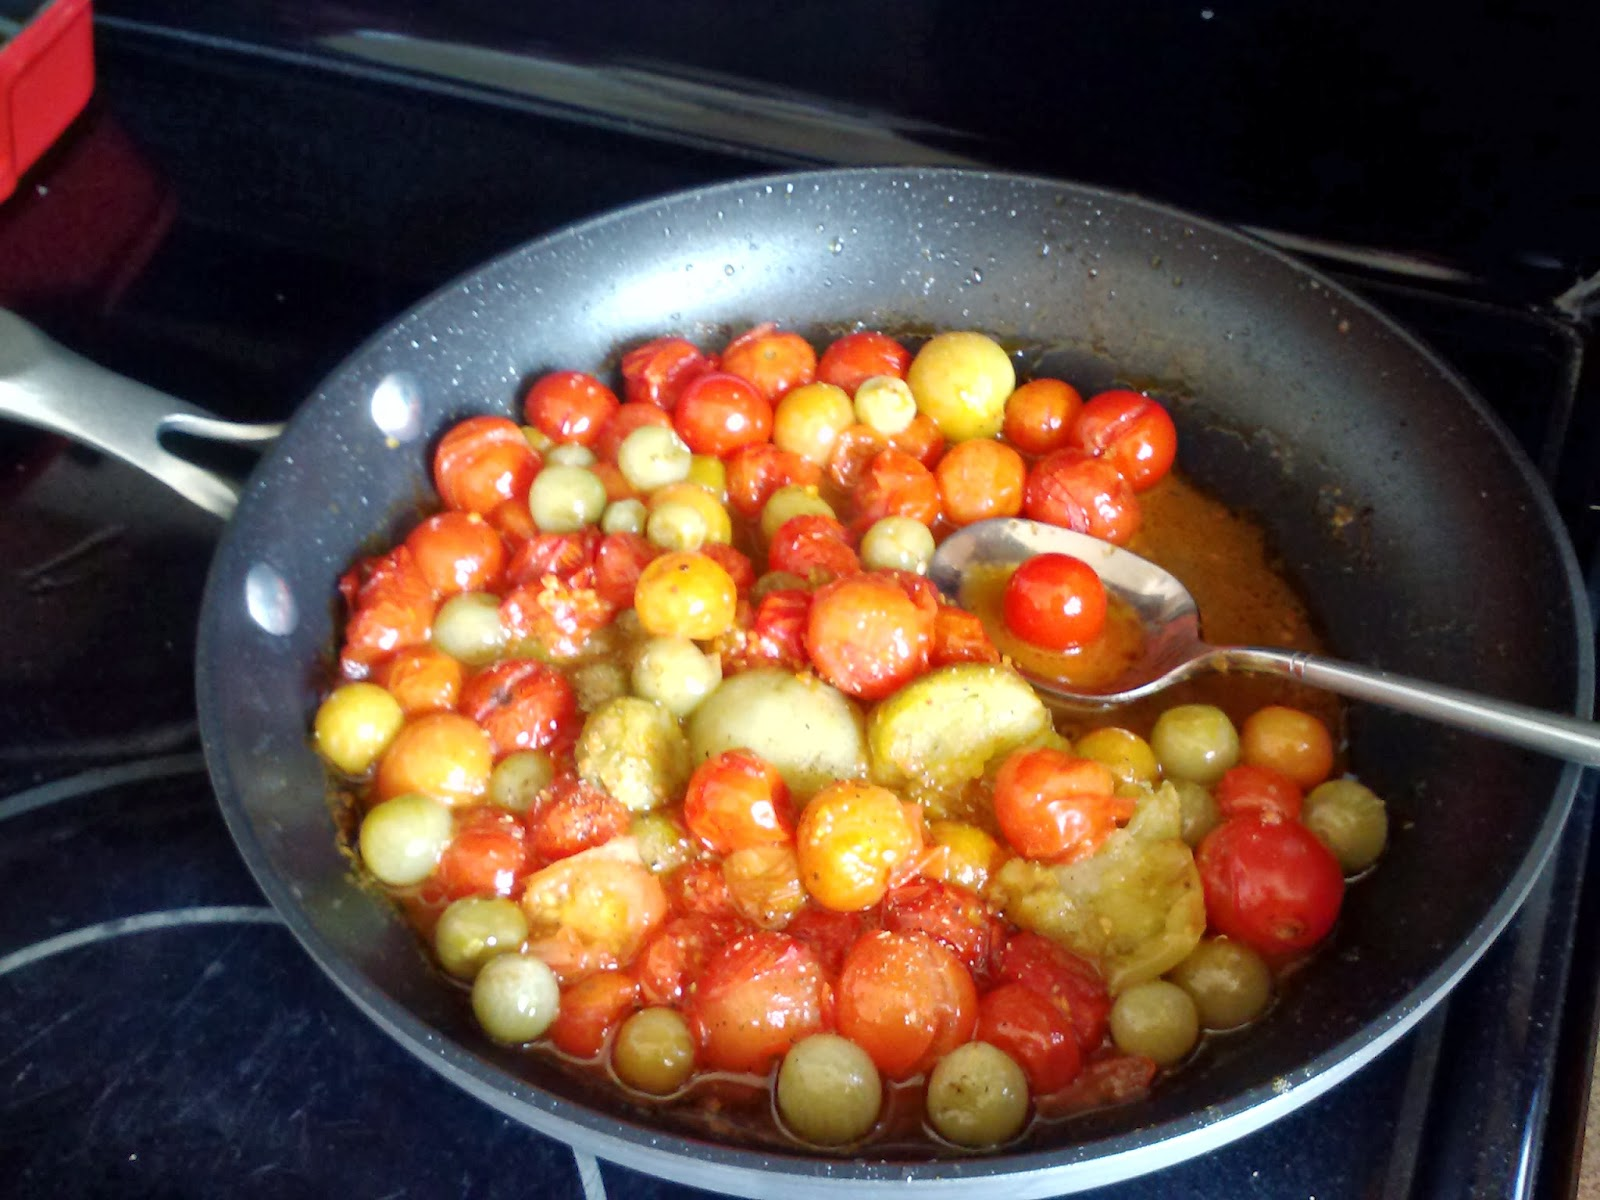 tomatoes, coconut oil, cooking, sauce, olive oil, gardening